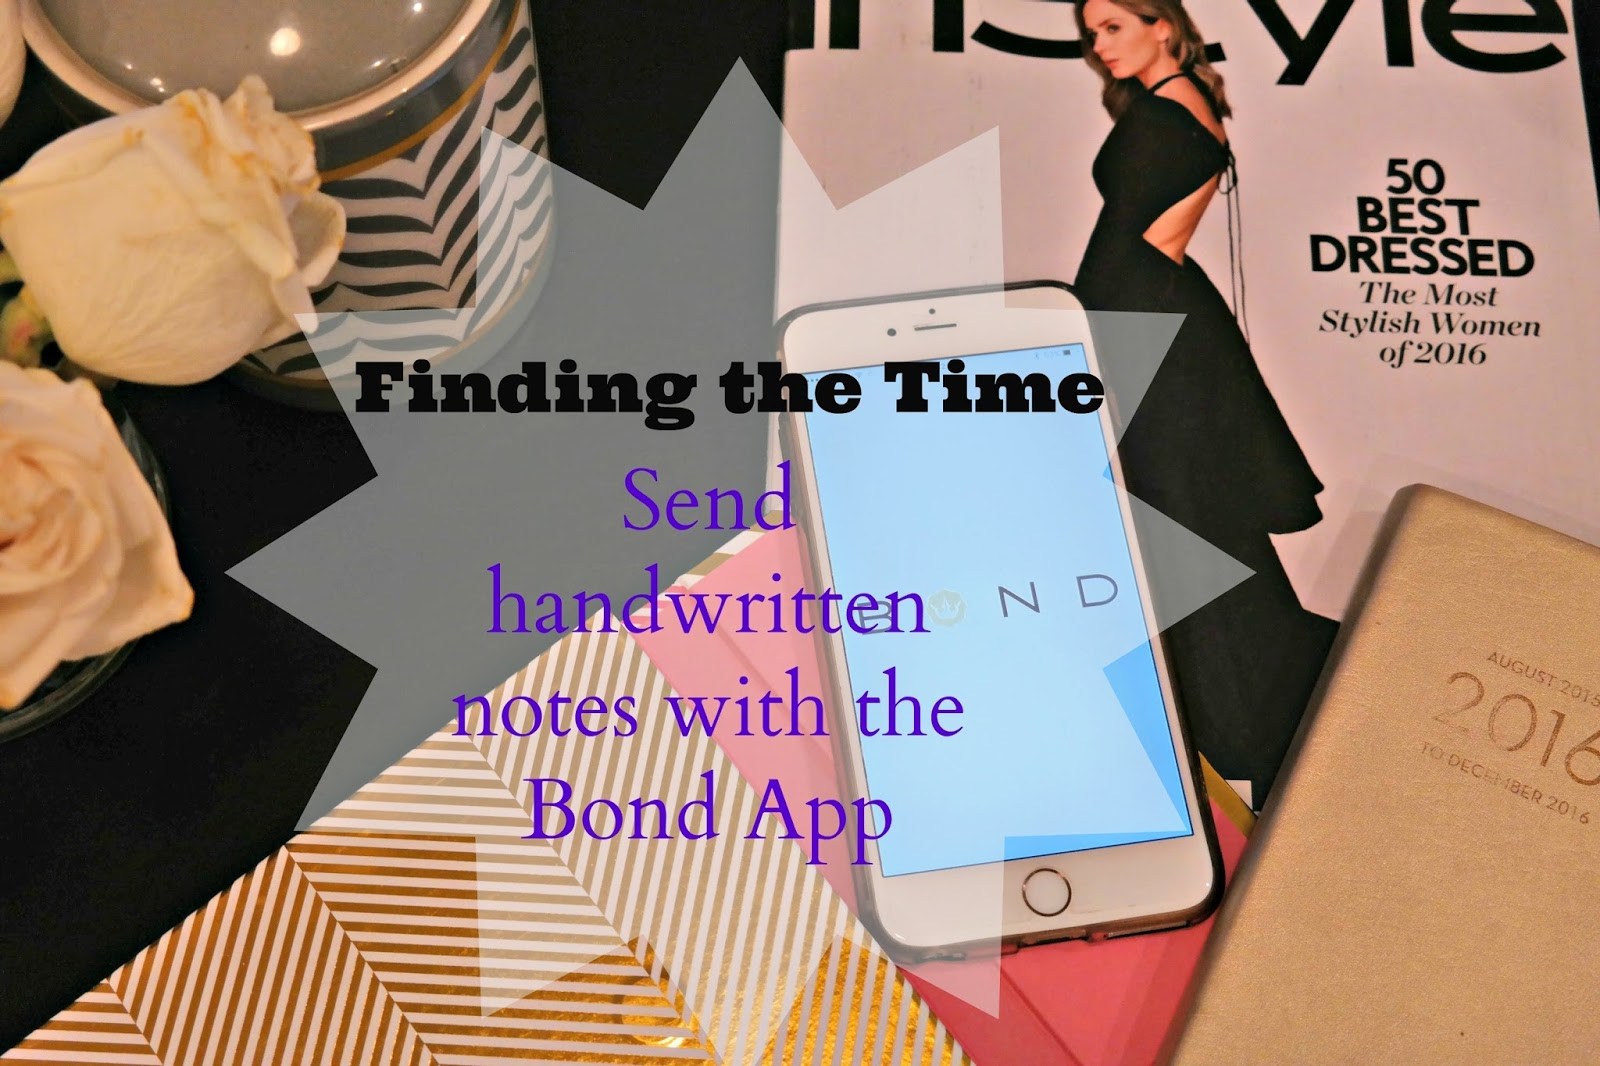 Bond App hand written notes